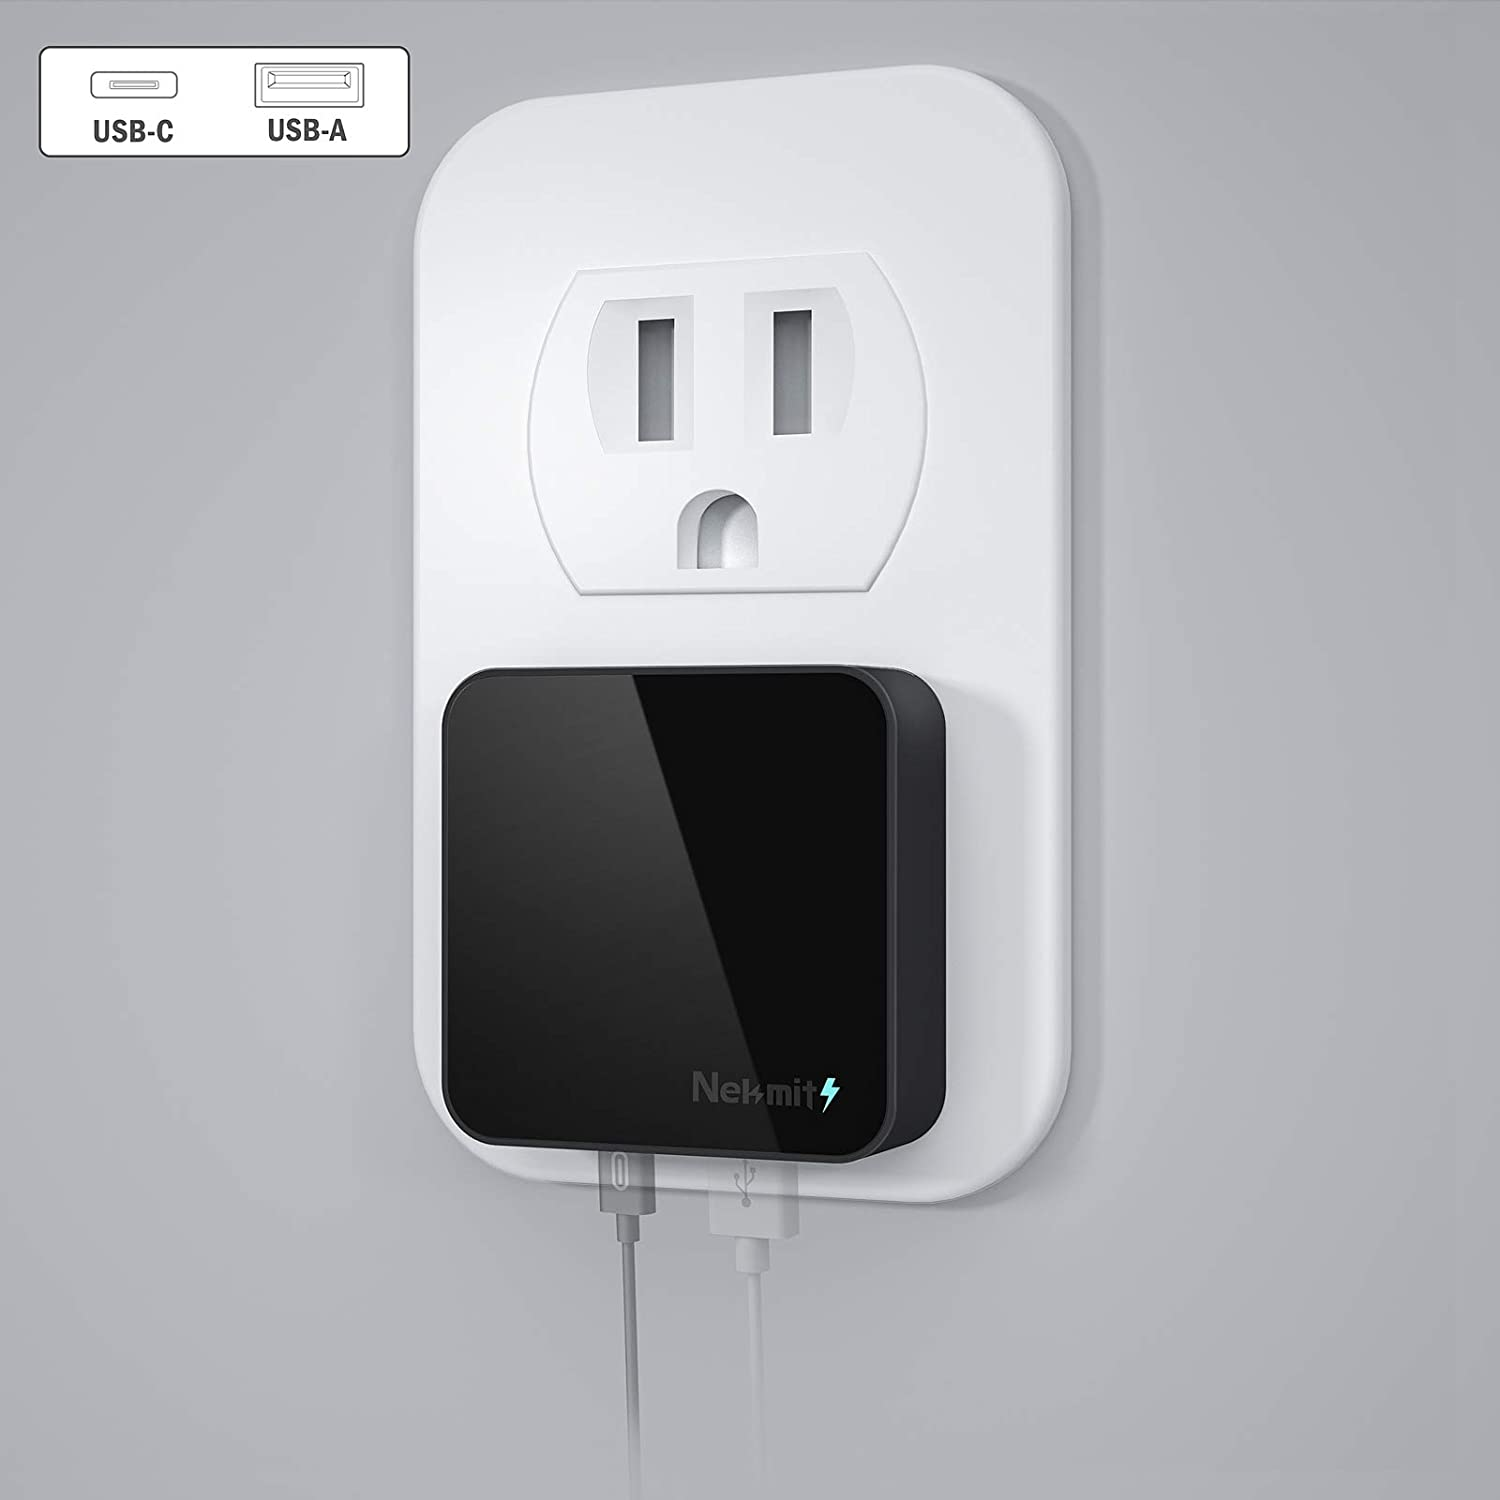 Nekmit USB C Charger, Thin Flat 30W Dual Port Fast Wall Charger with 18W Power Delivery PD 3.0 and 12W USB Port for iPhone 12/12 Mini/12 Pro/12 Pro Max, Galaxy, Pixel, iPad Pro, AirPods Pro and More